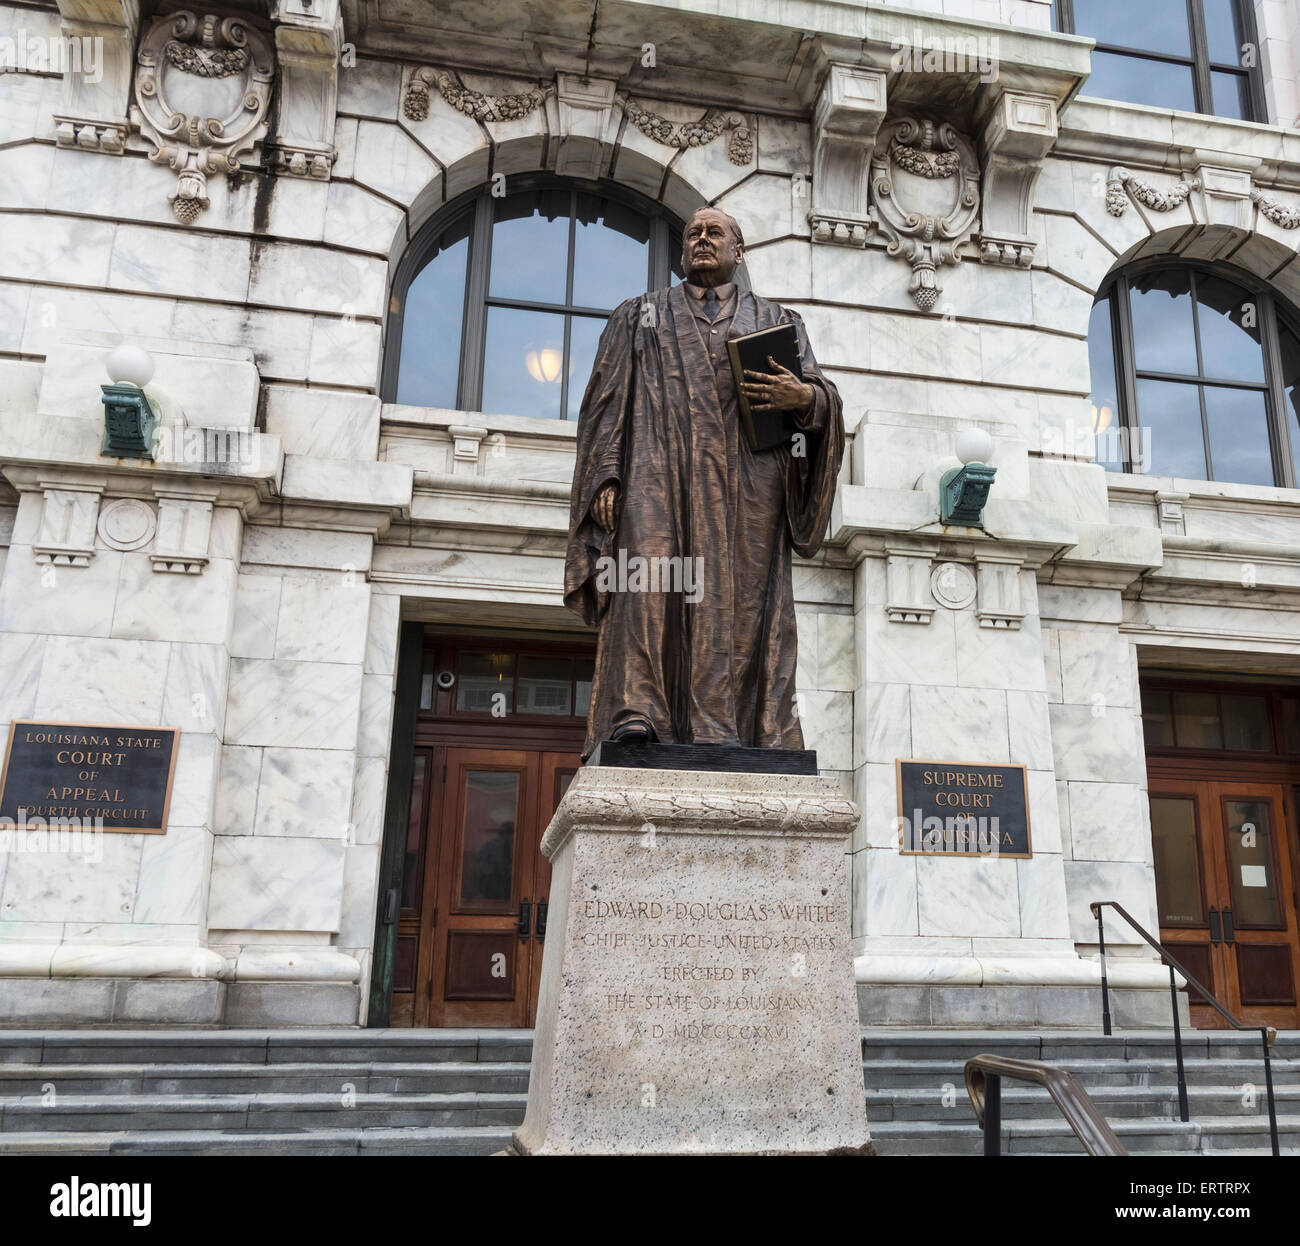 Louisiana State Court of Appeal, Fourth Circuit courthouse building with Edward White statue, New Orleans, USA - Stock Image